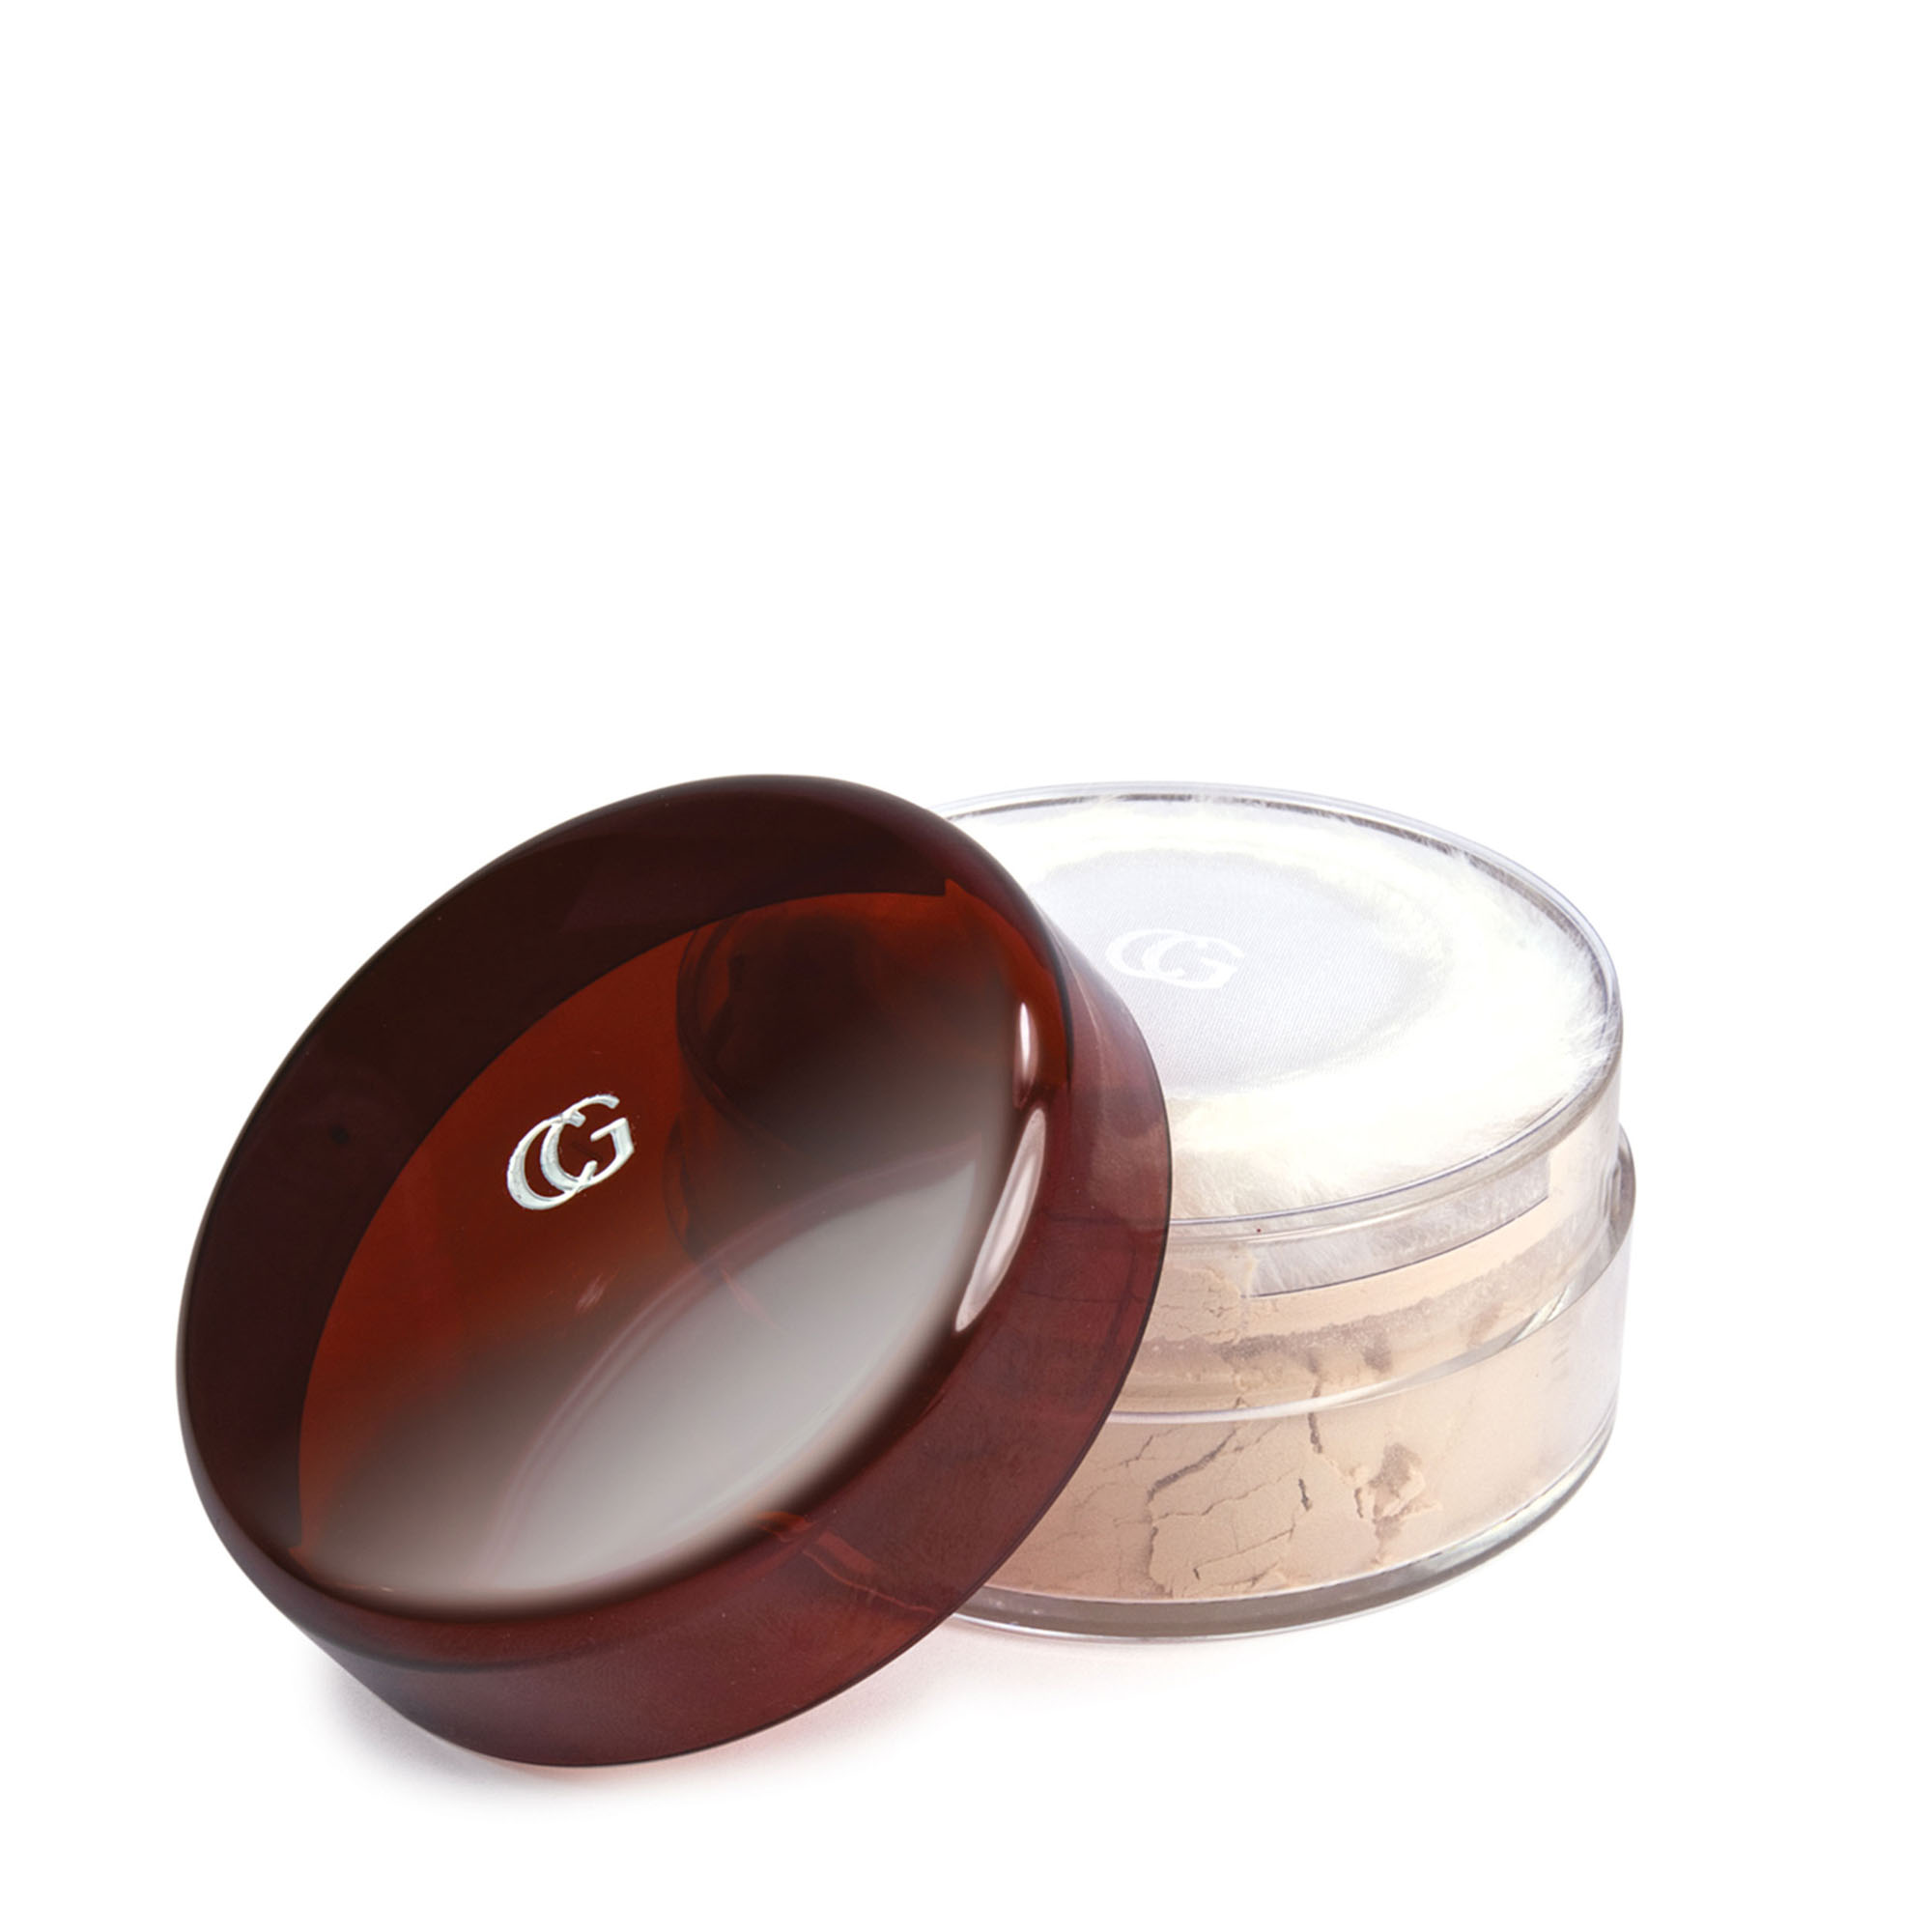 Covergirl clean professional loose powder translucent light 110 7 covergirl clean professional loose powder translucent light 110 7 oz walmart geenschuldenfo Image collections